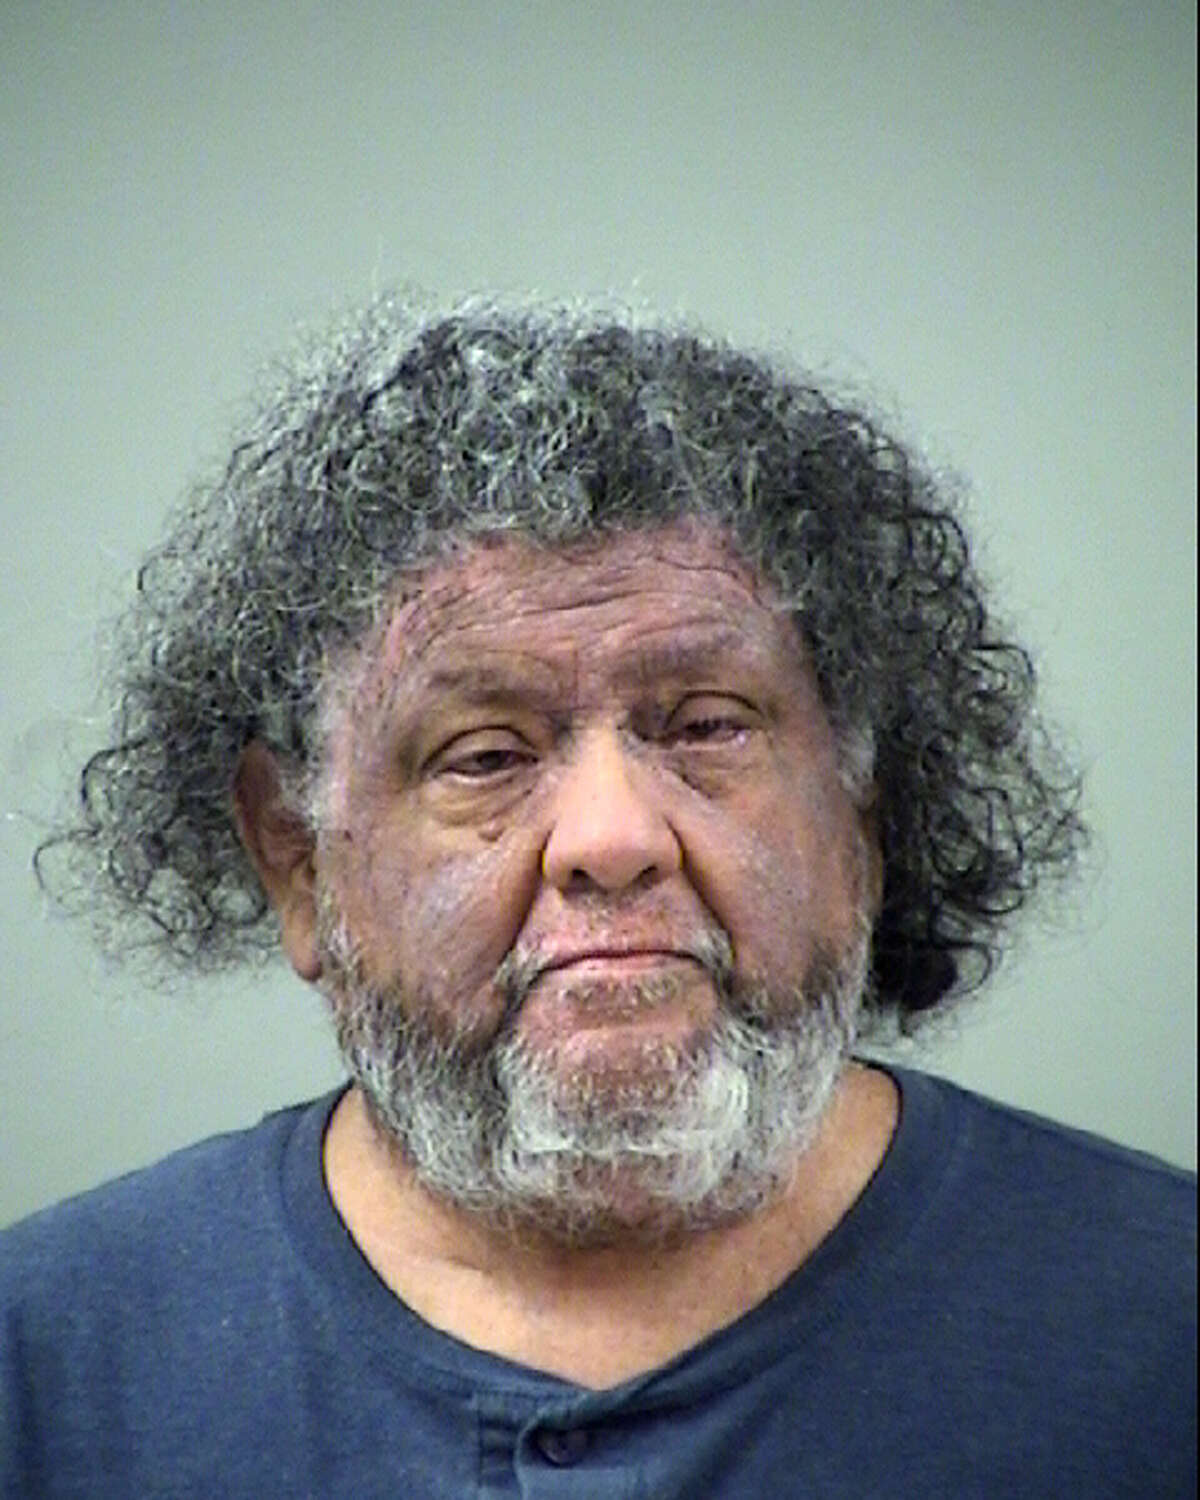 A San Antonio man was indicted for abusing his family members by shooting them with a BB gun over the span of a year, according to district clerk records.